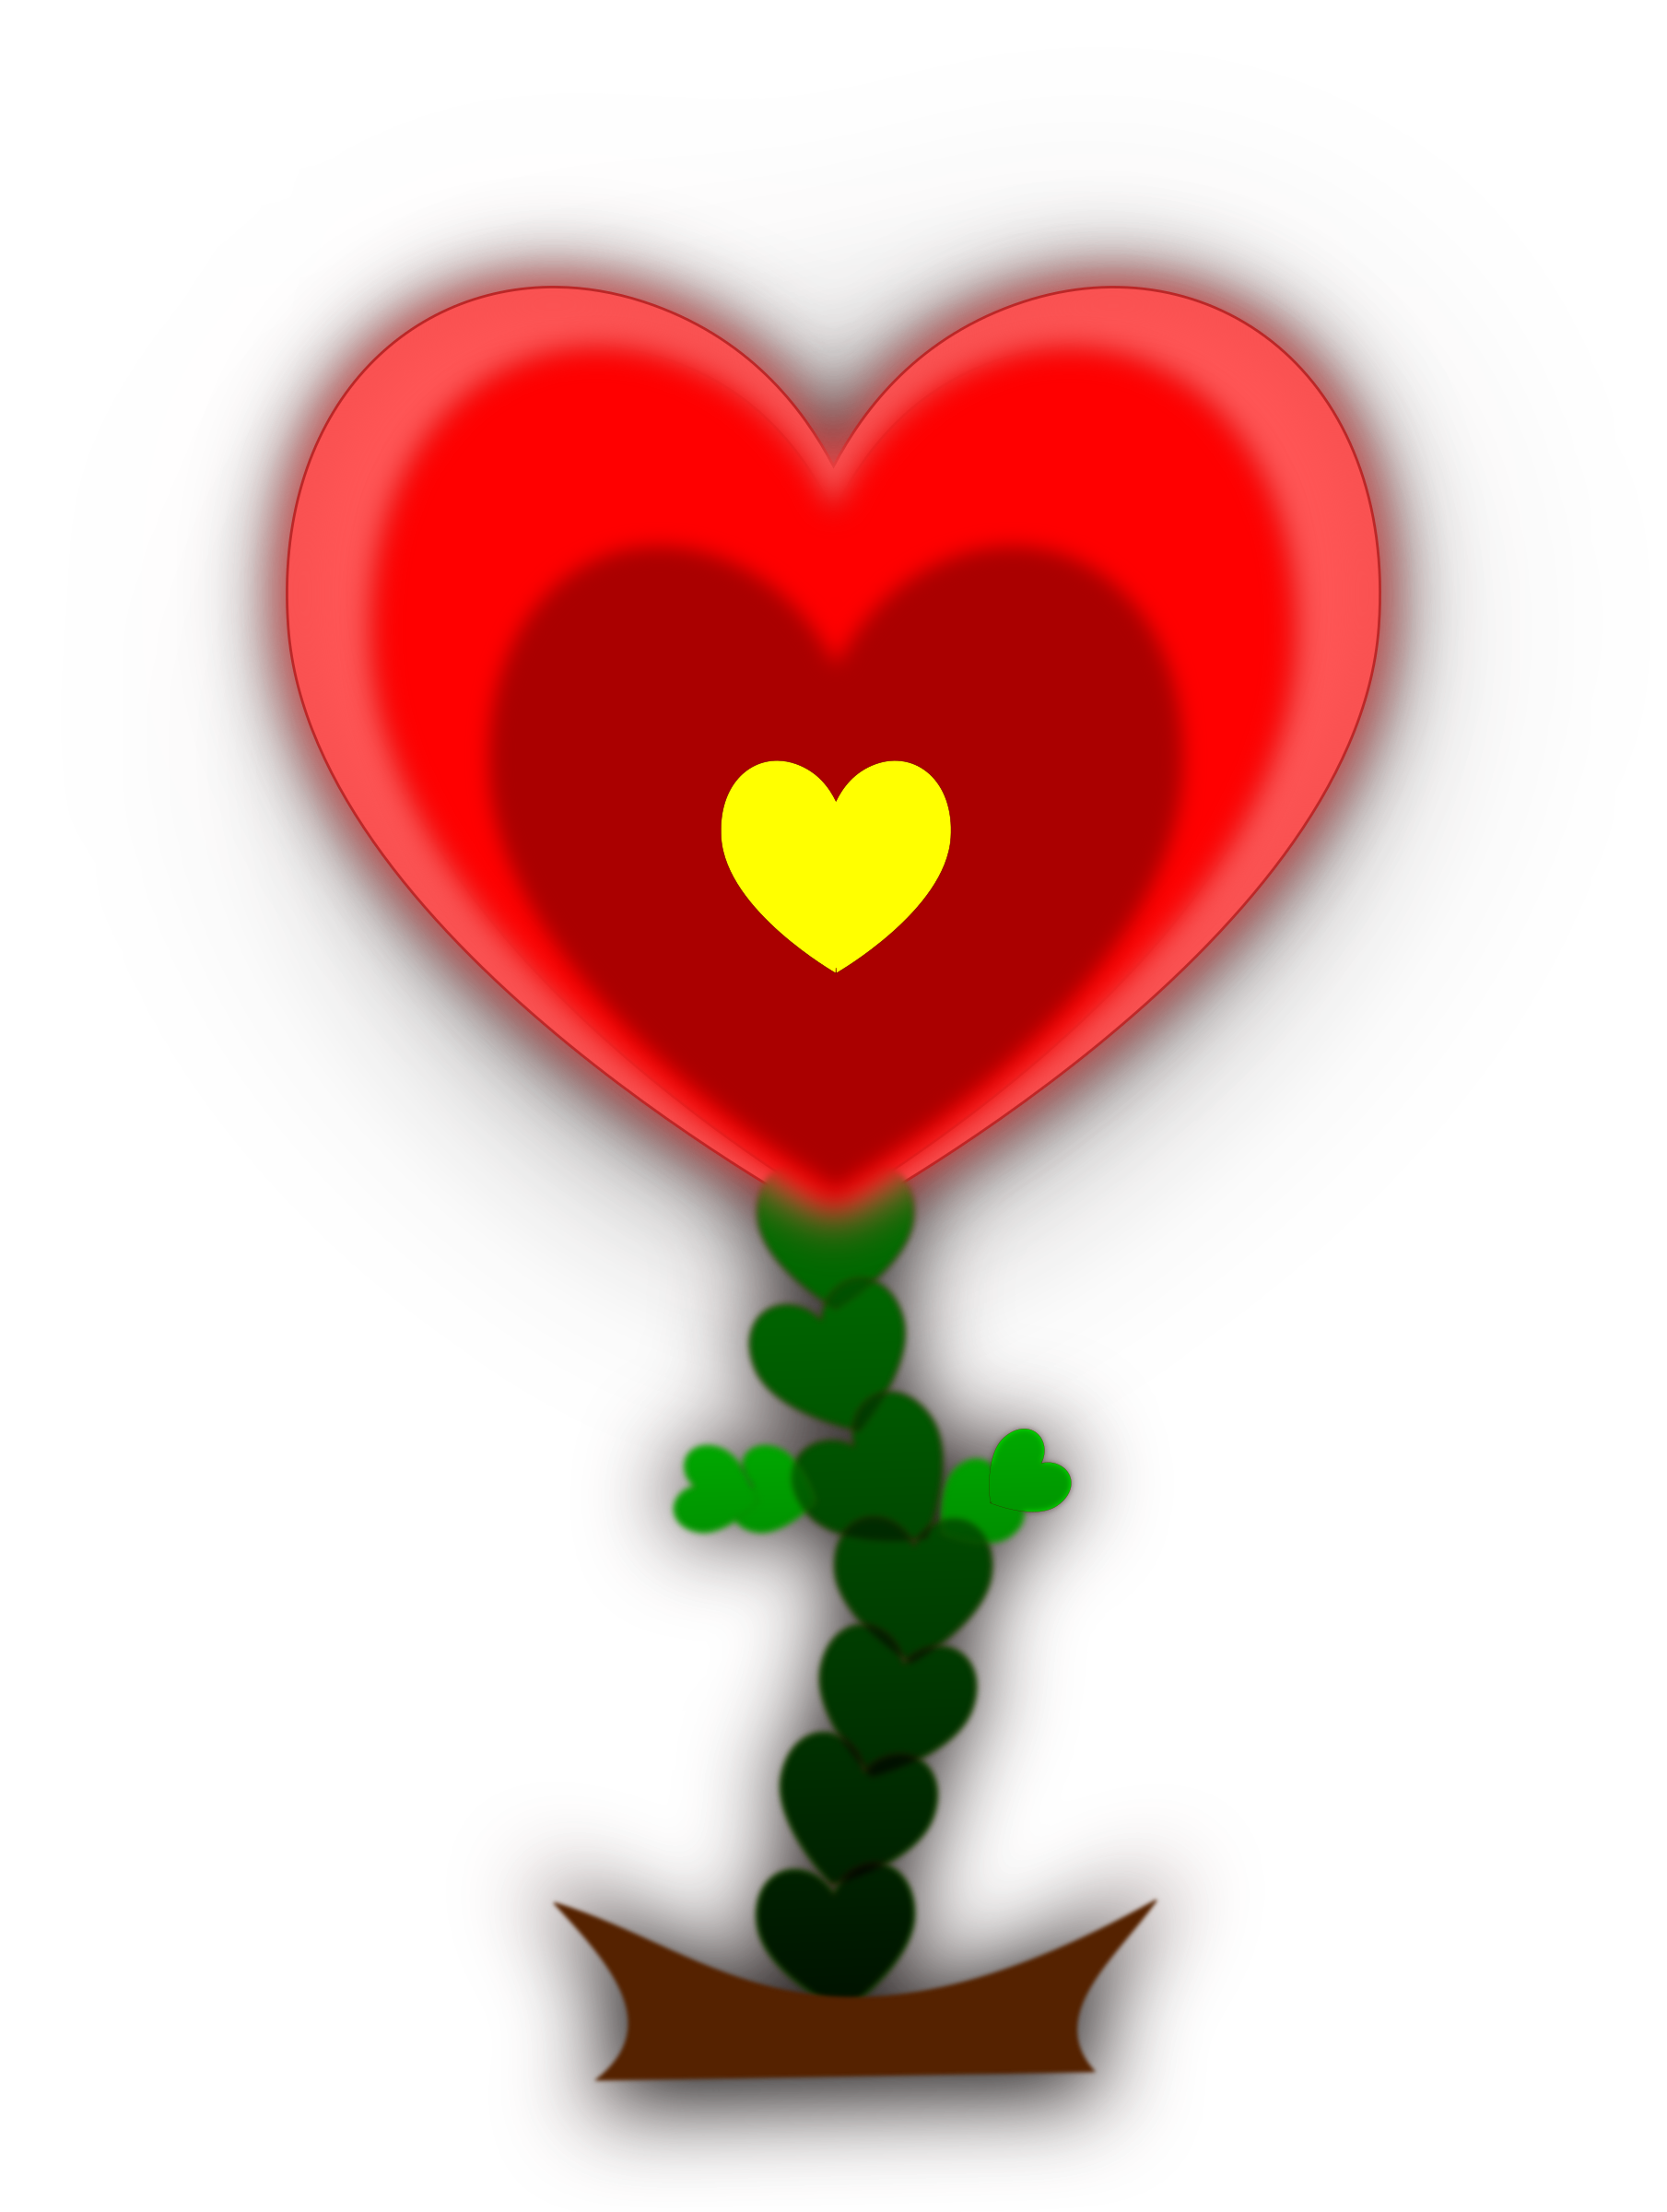 Heart big image png. Clipart hearts flower